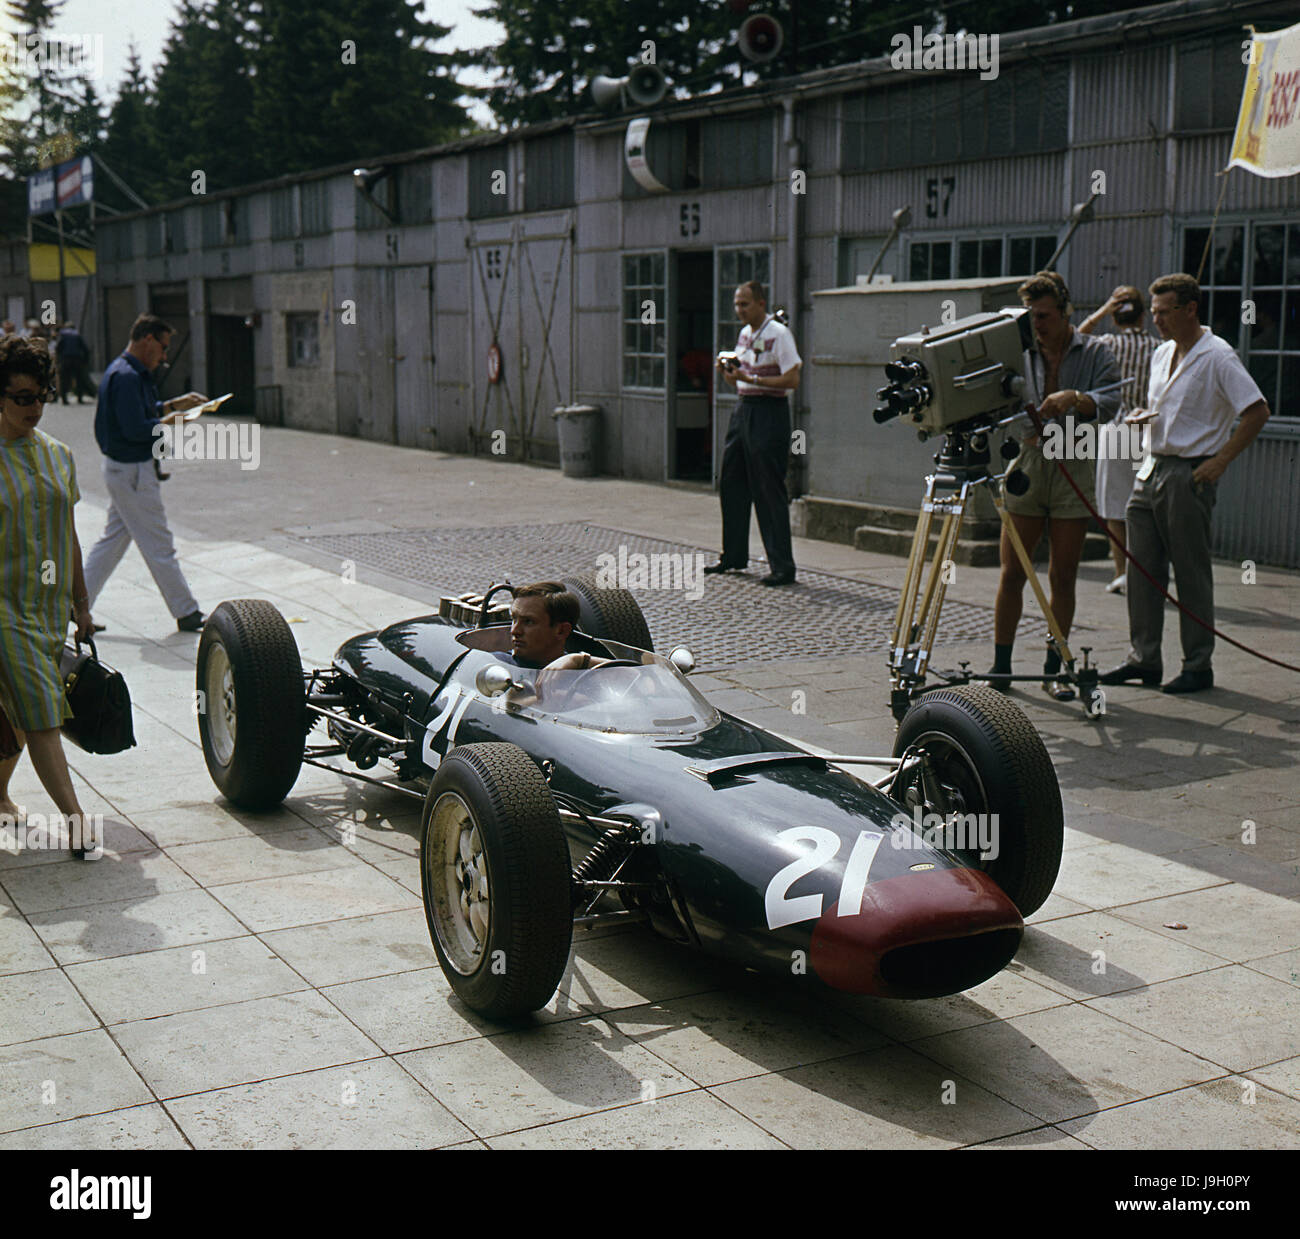 Lola Coventry Climax Chris Amon 1963 German GP - Stock Image